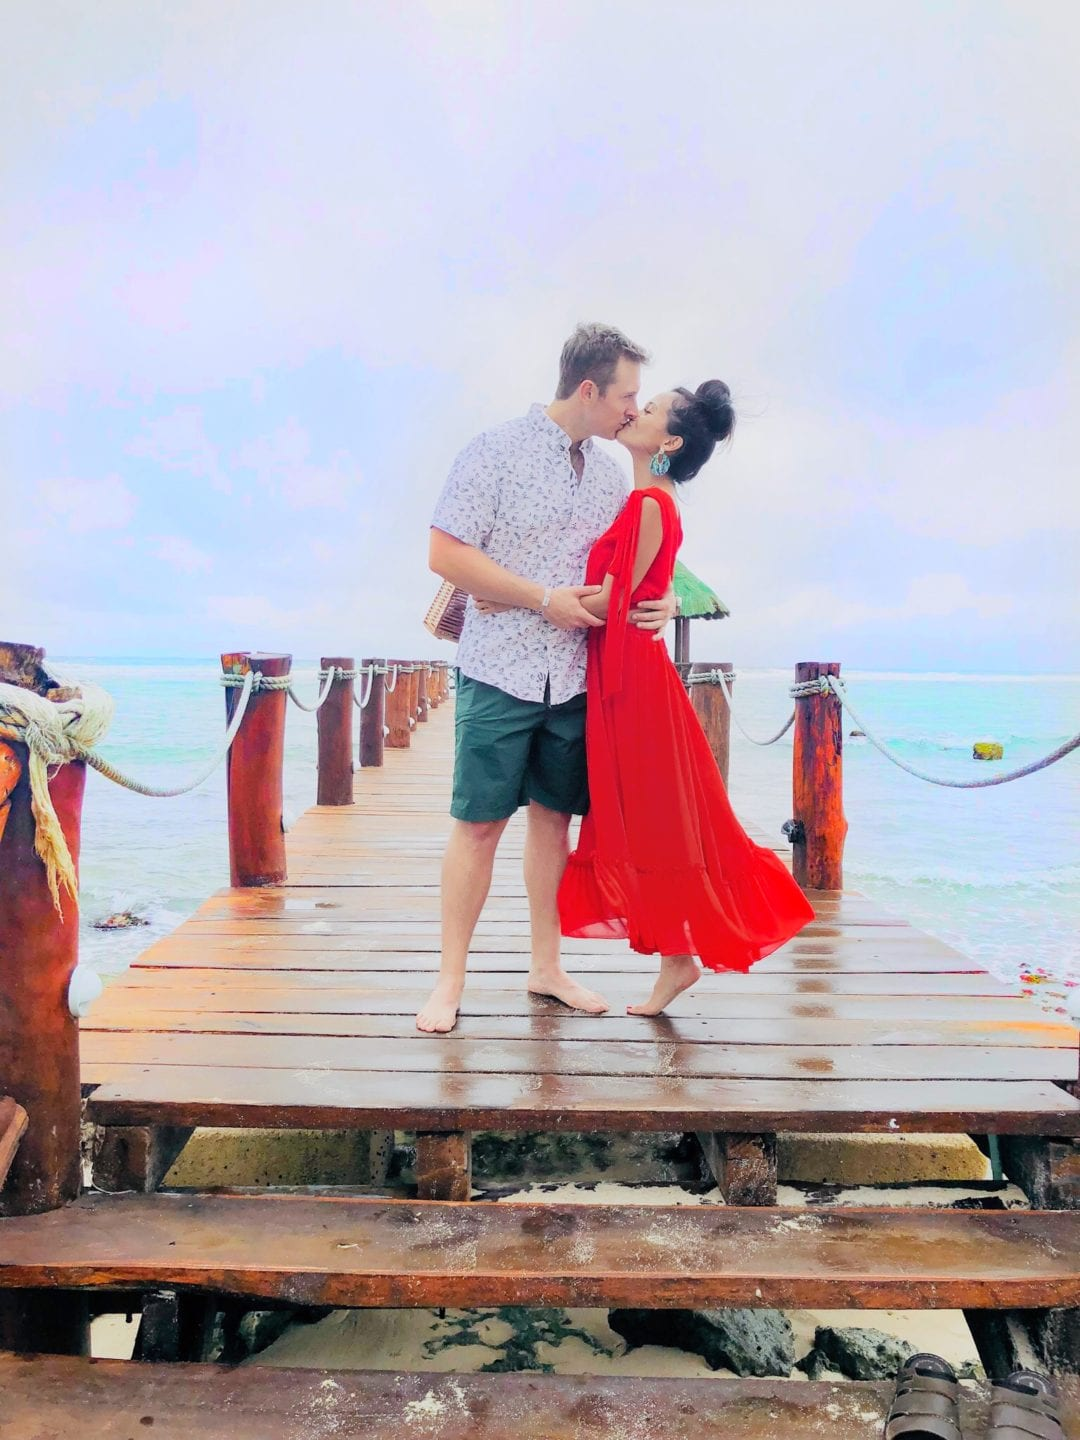 #visitmexico, Tulum, mexioc, Akumal, anniversary pictures, red dress, summer style, #couplesgoals, #summerfashion, vacation style, what to wear to Mexico, vacation style